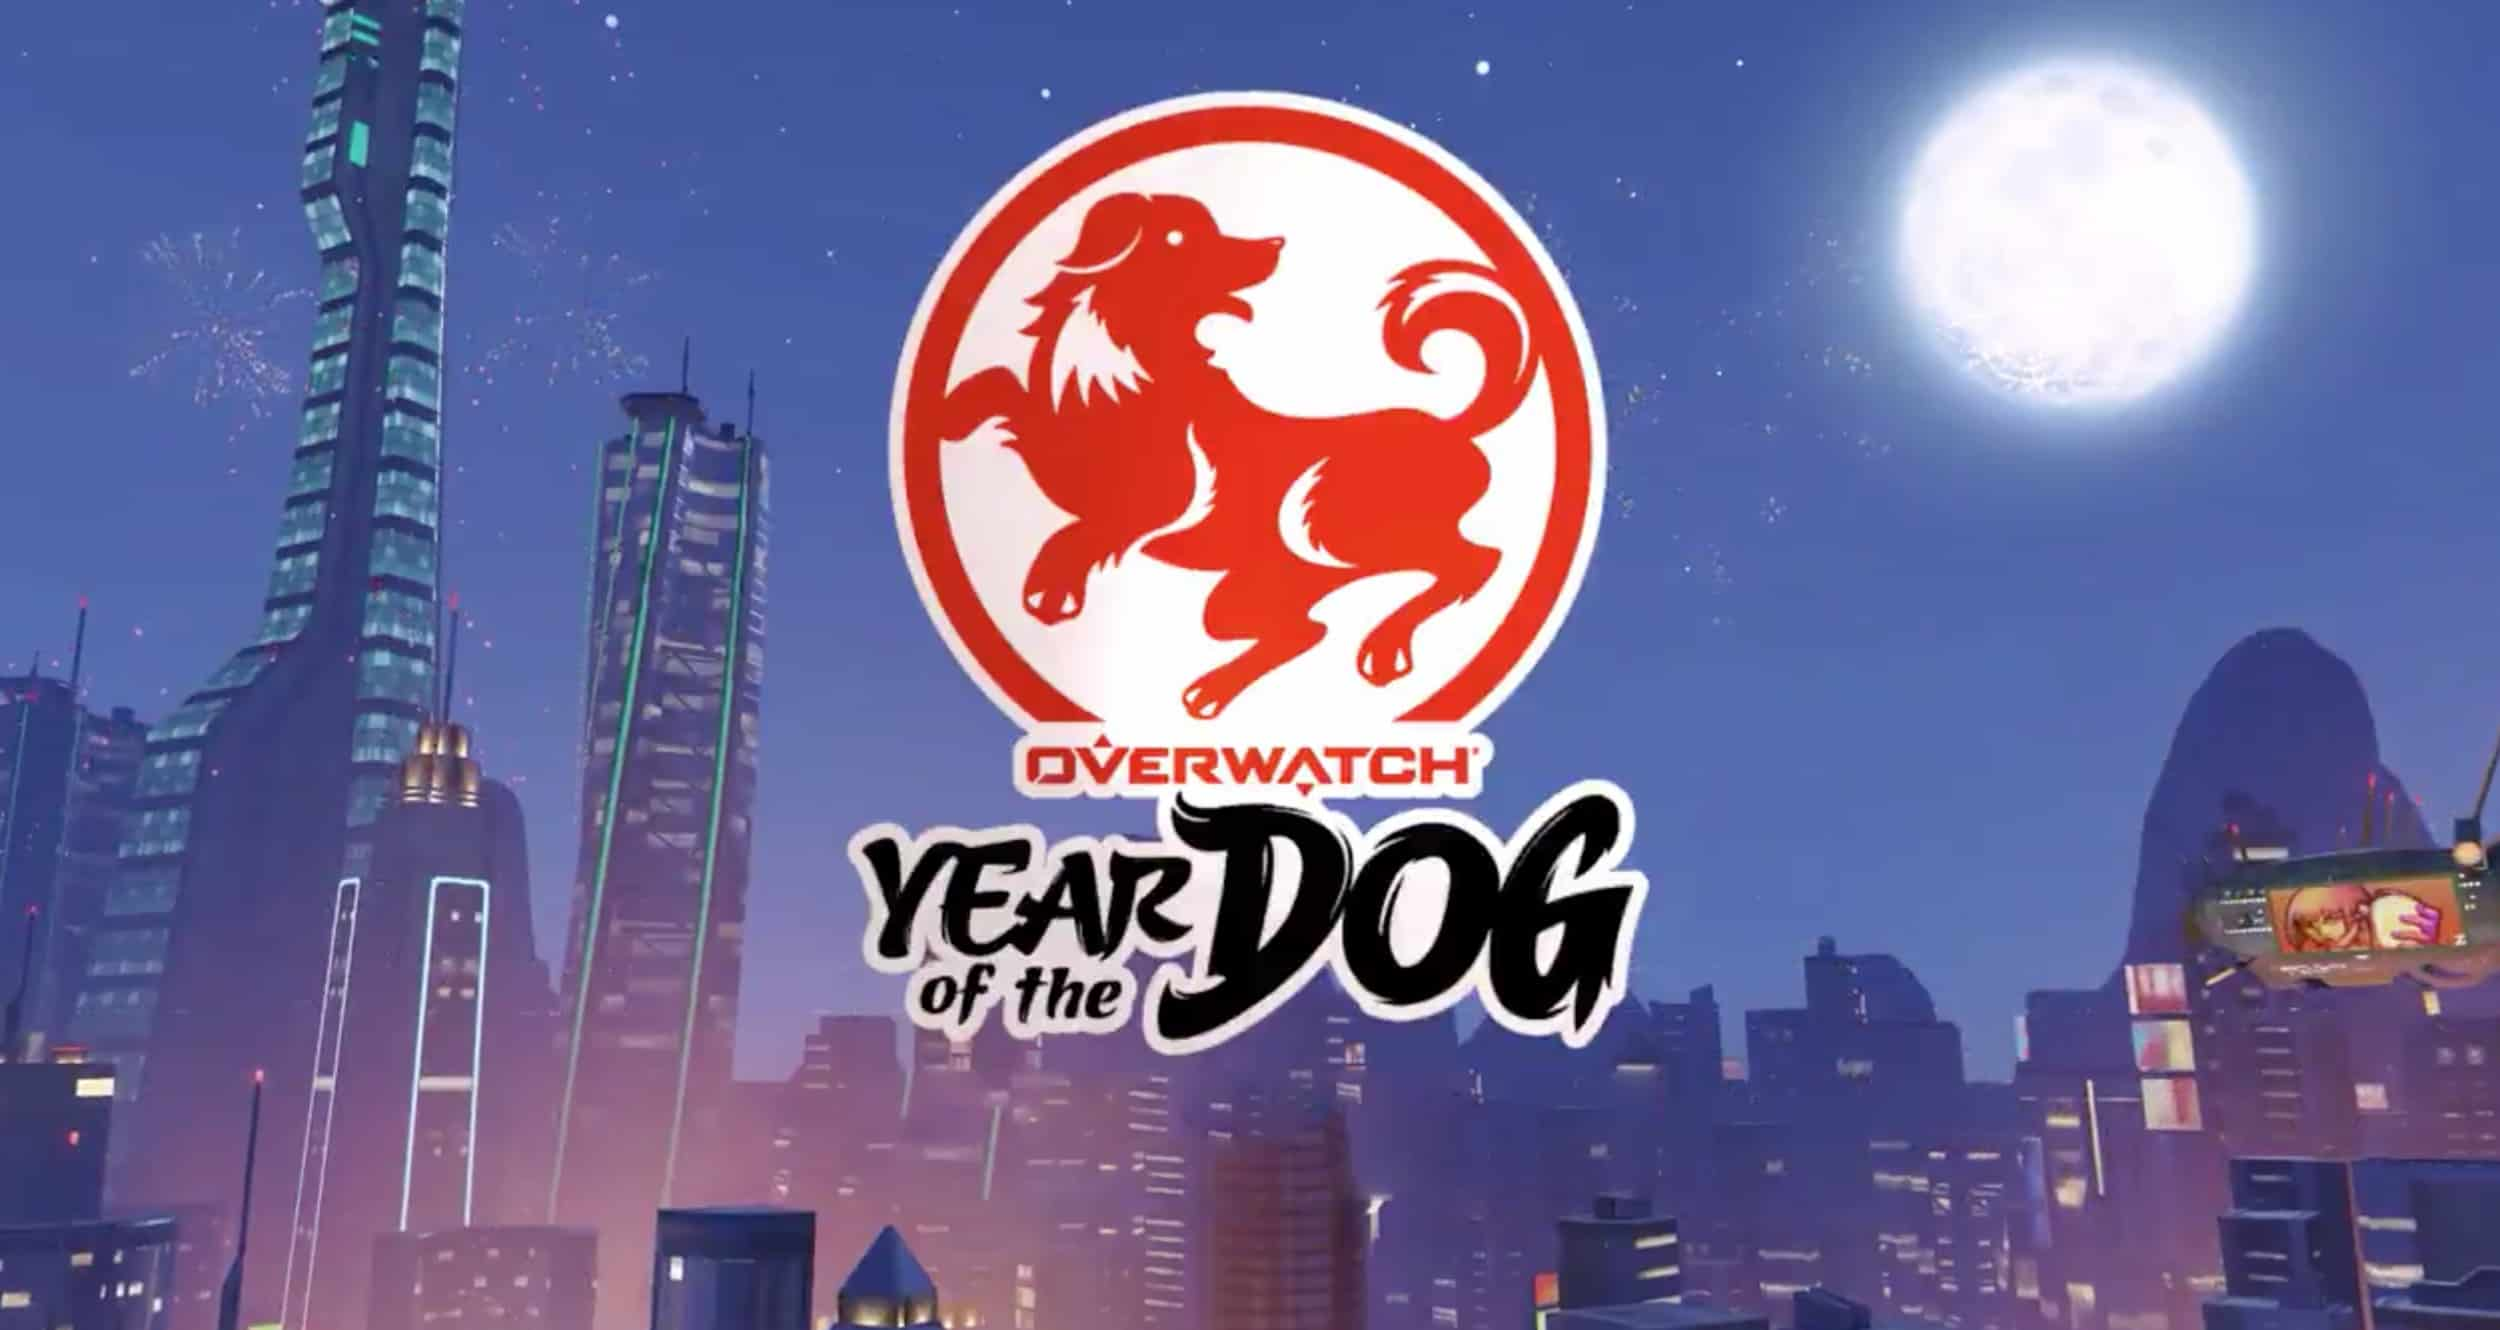 It's time to celebrate with Overwatch's newest Lunar New Year Event, Year of the Dog